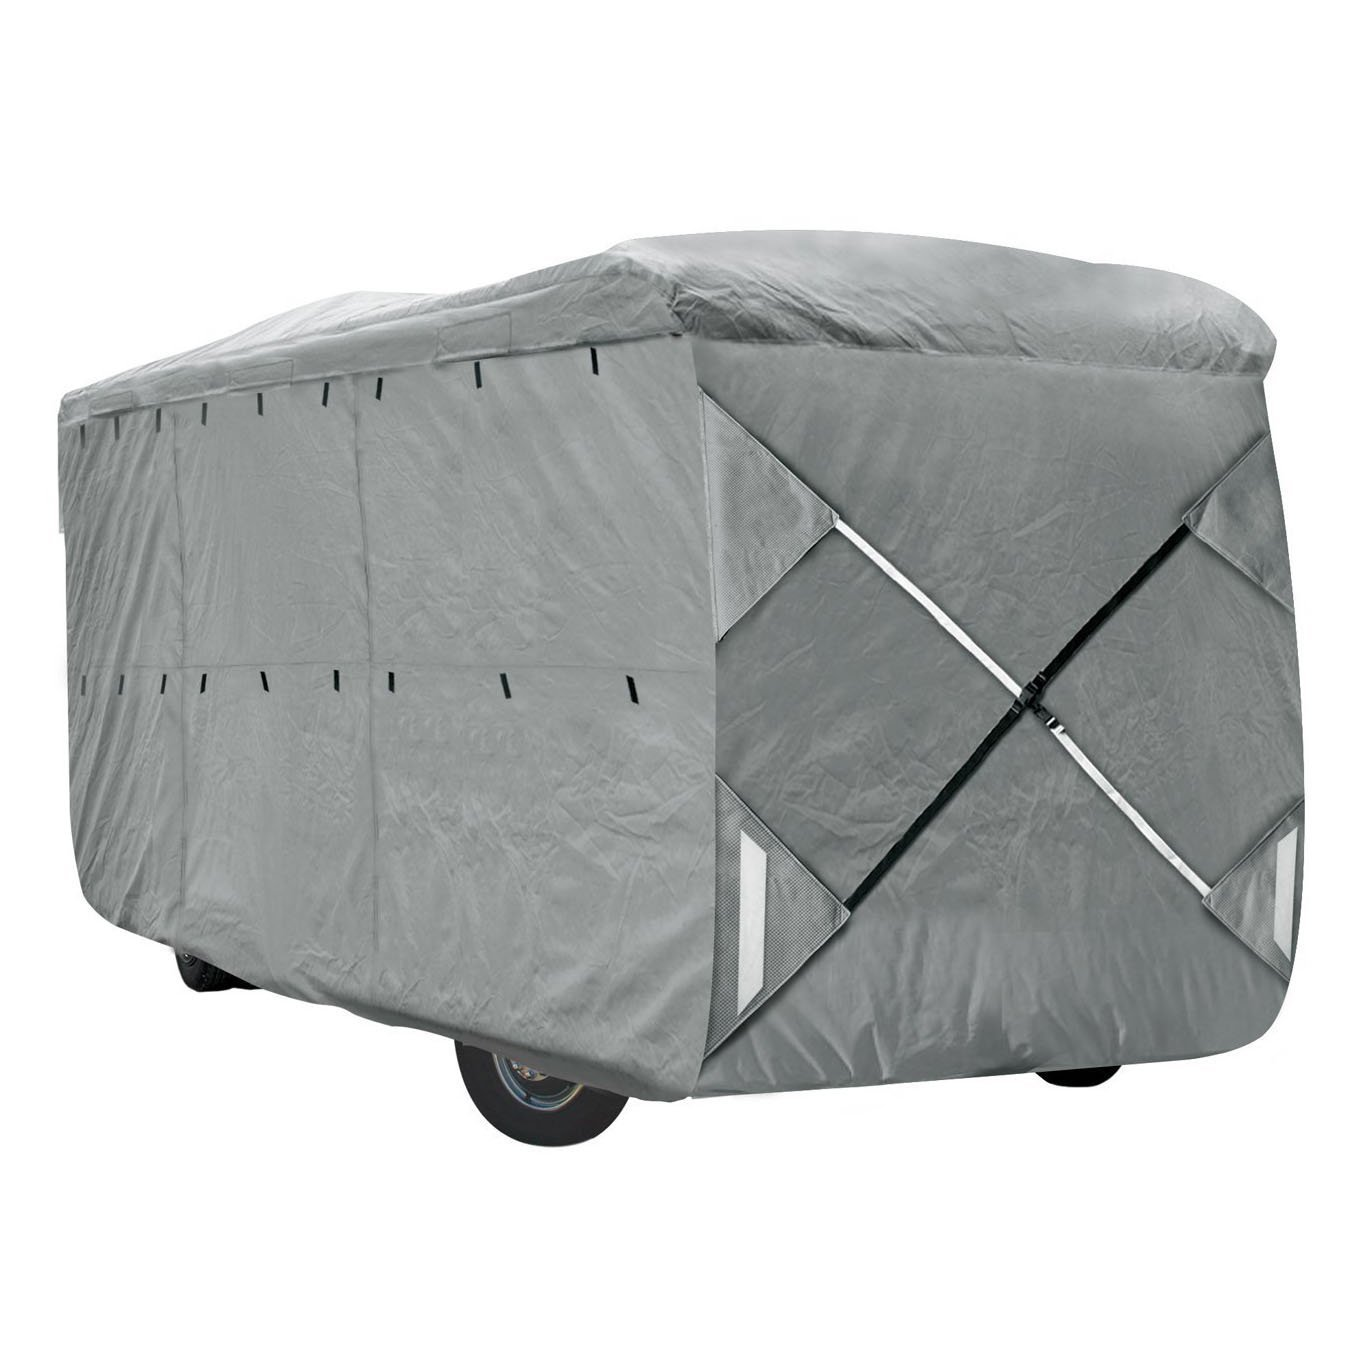 XGear Outdoors Class A RV Cover, Fits 28' - 30' Class A Motorhome, with 3-Ply Roof for Max Weather Protection, Grey by XGear Outdoors